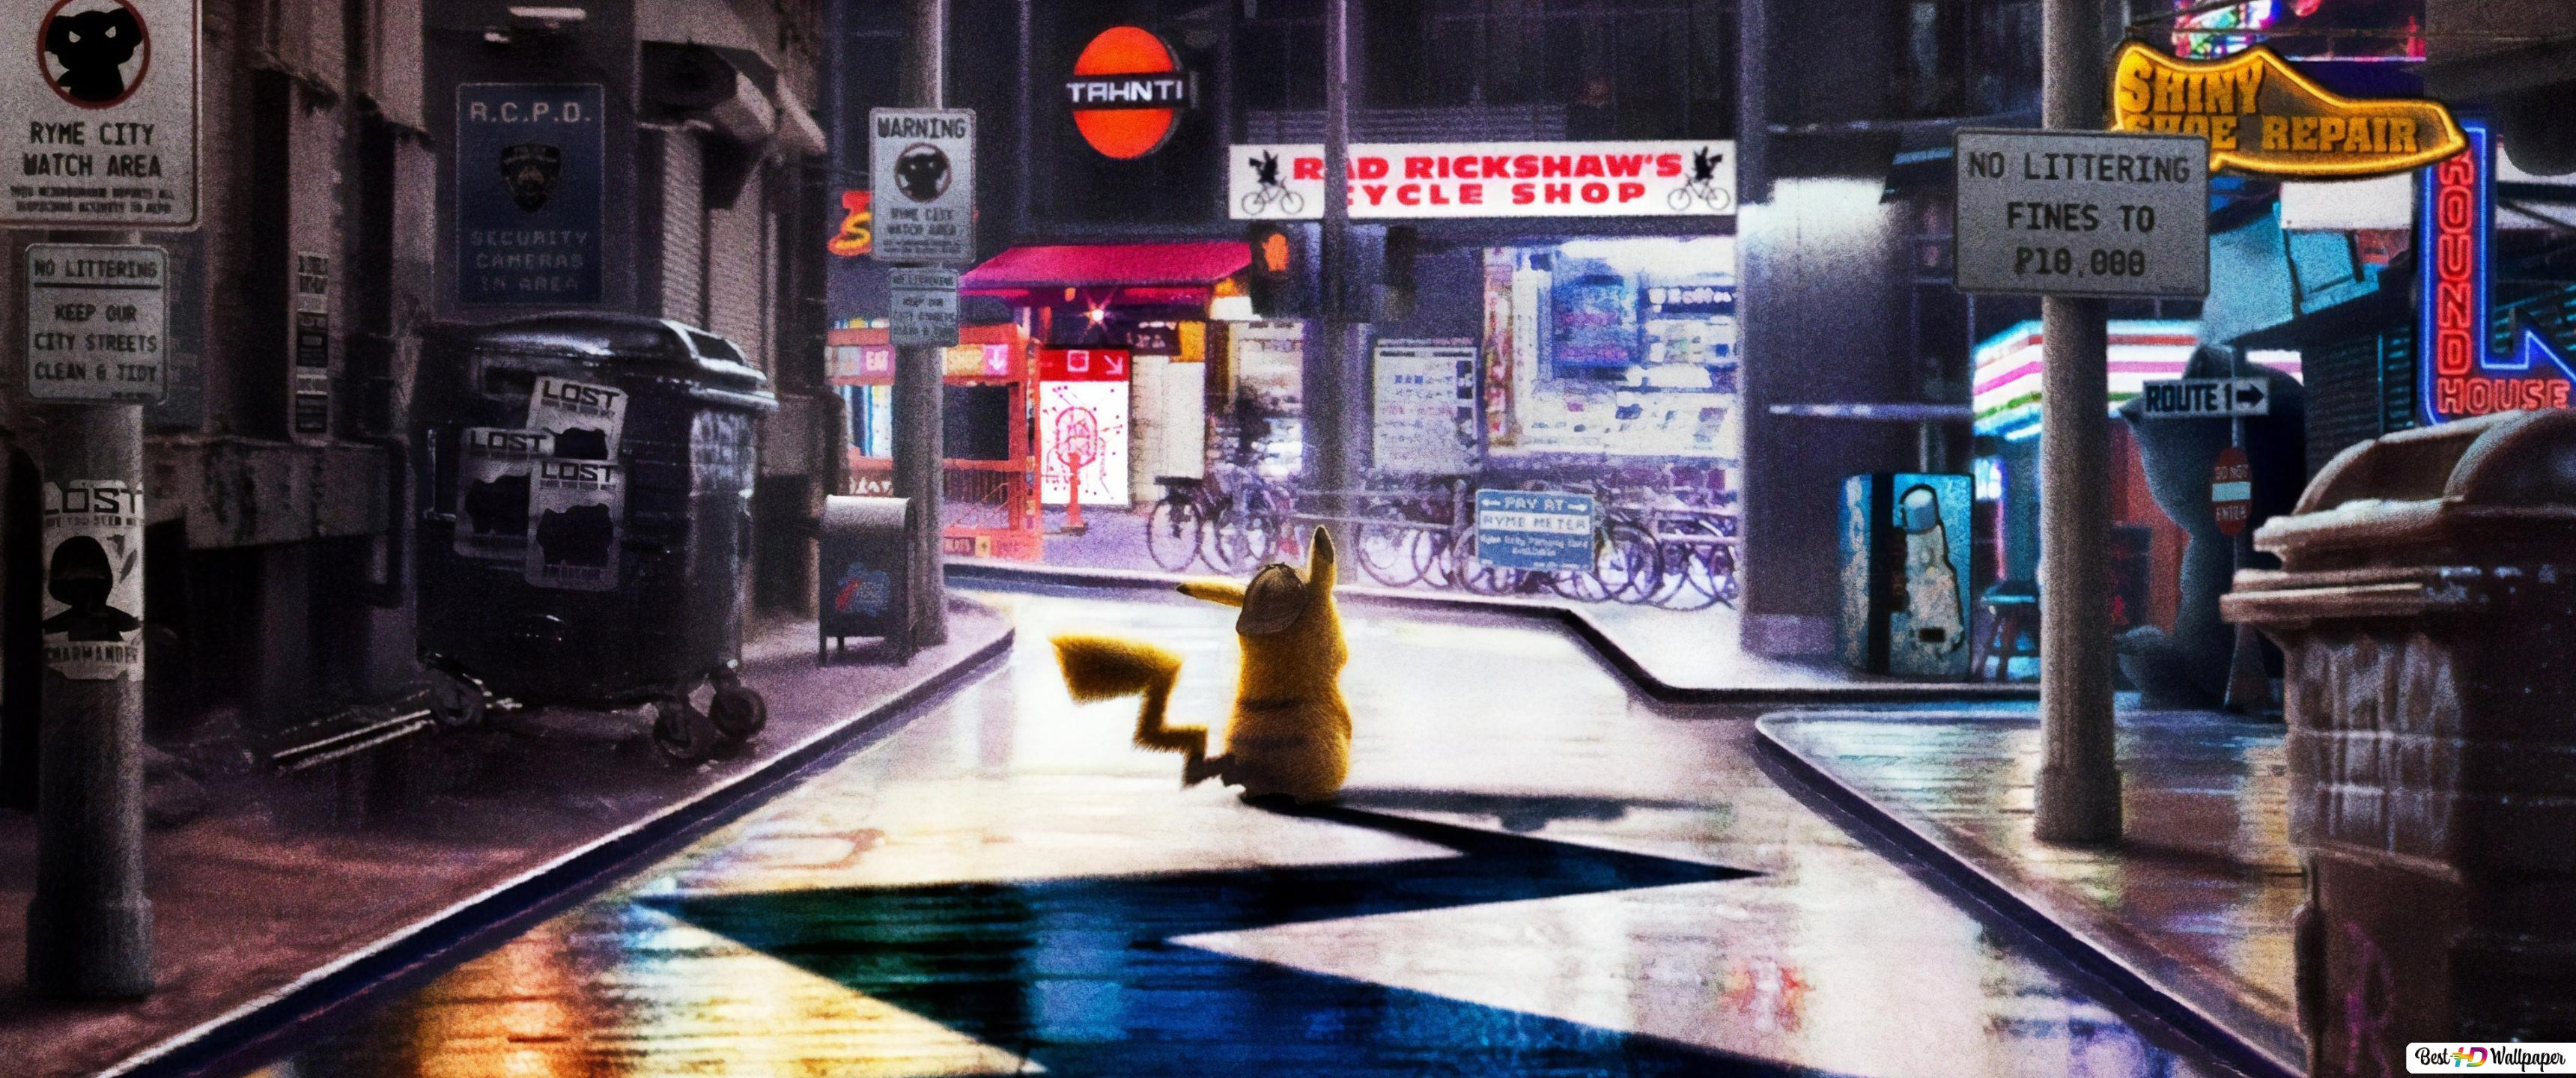 Pokémon Detective Pikachu Hd Wallpaper Download